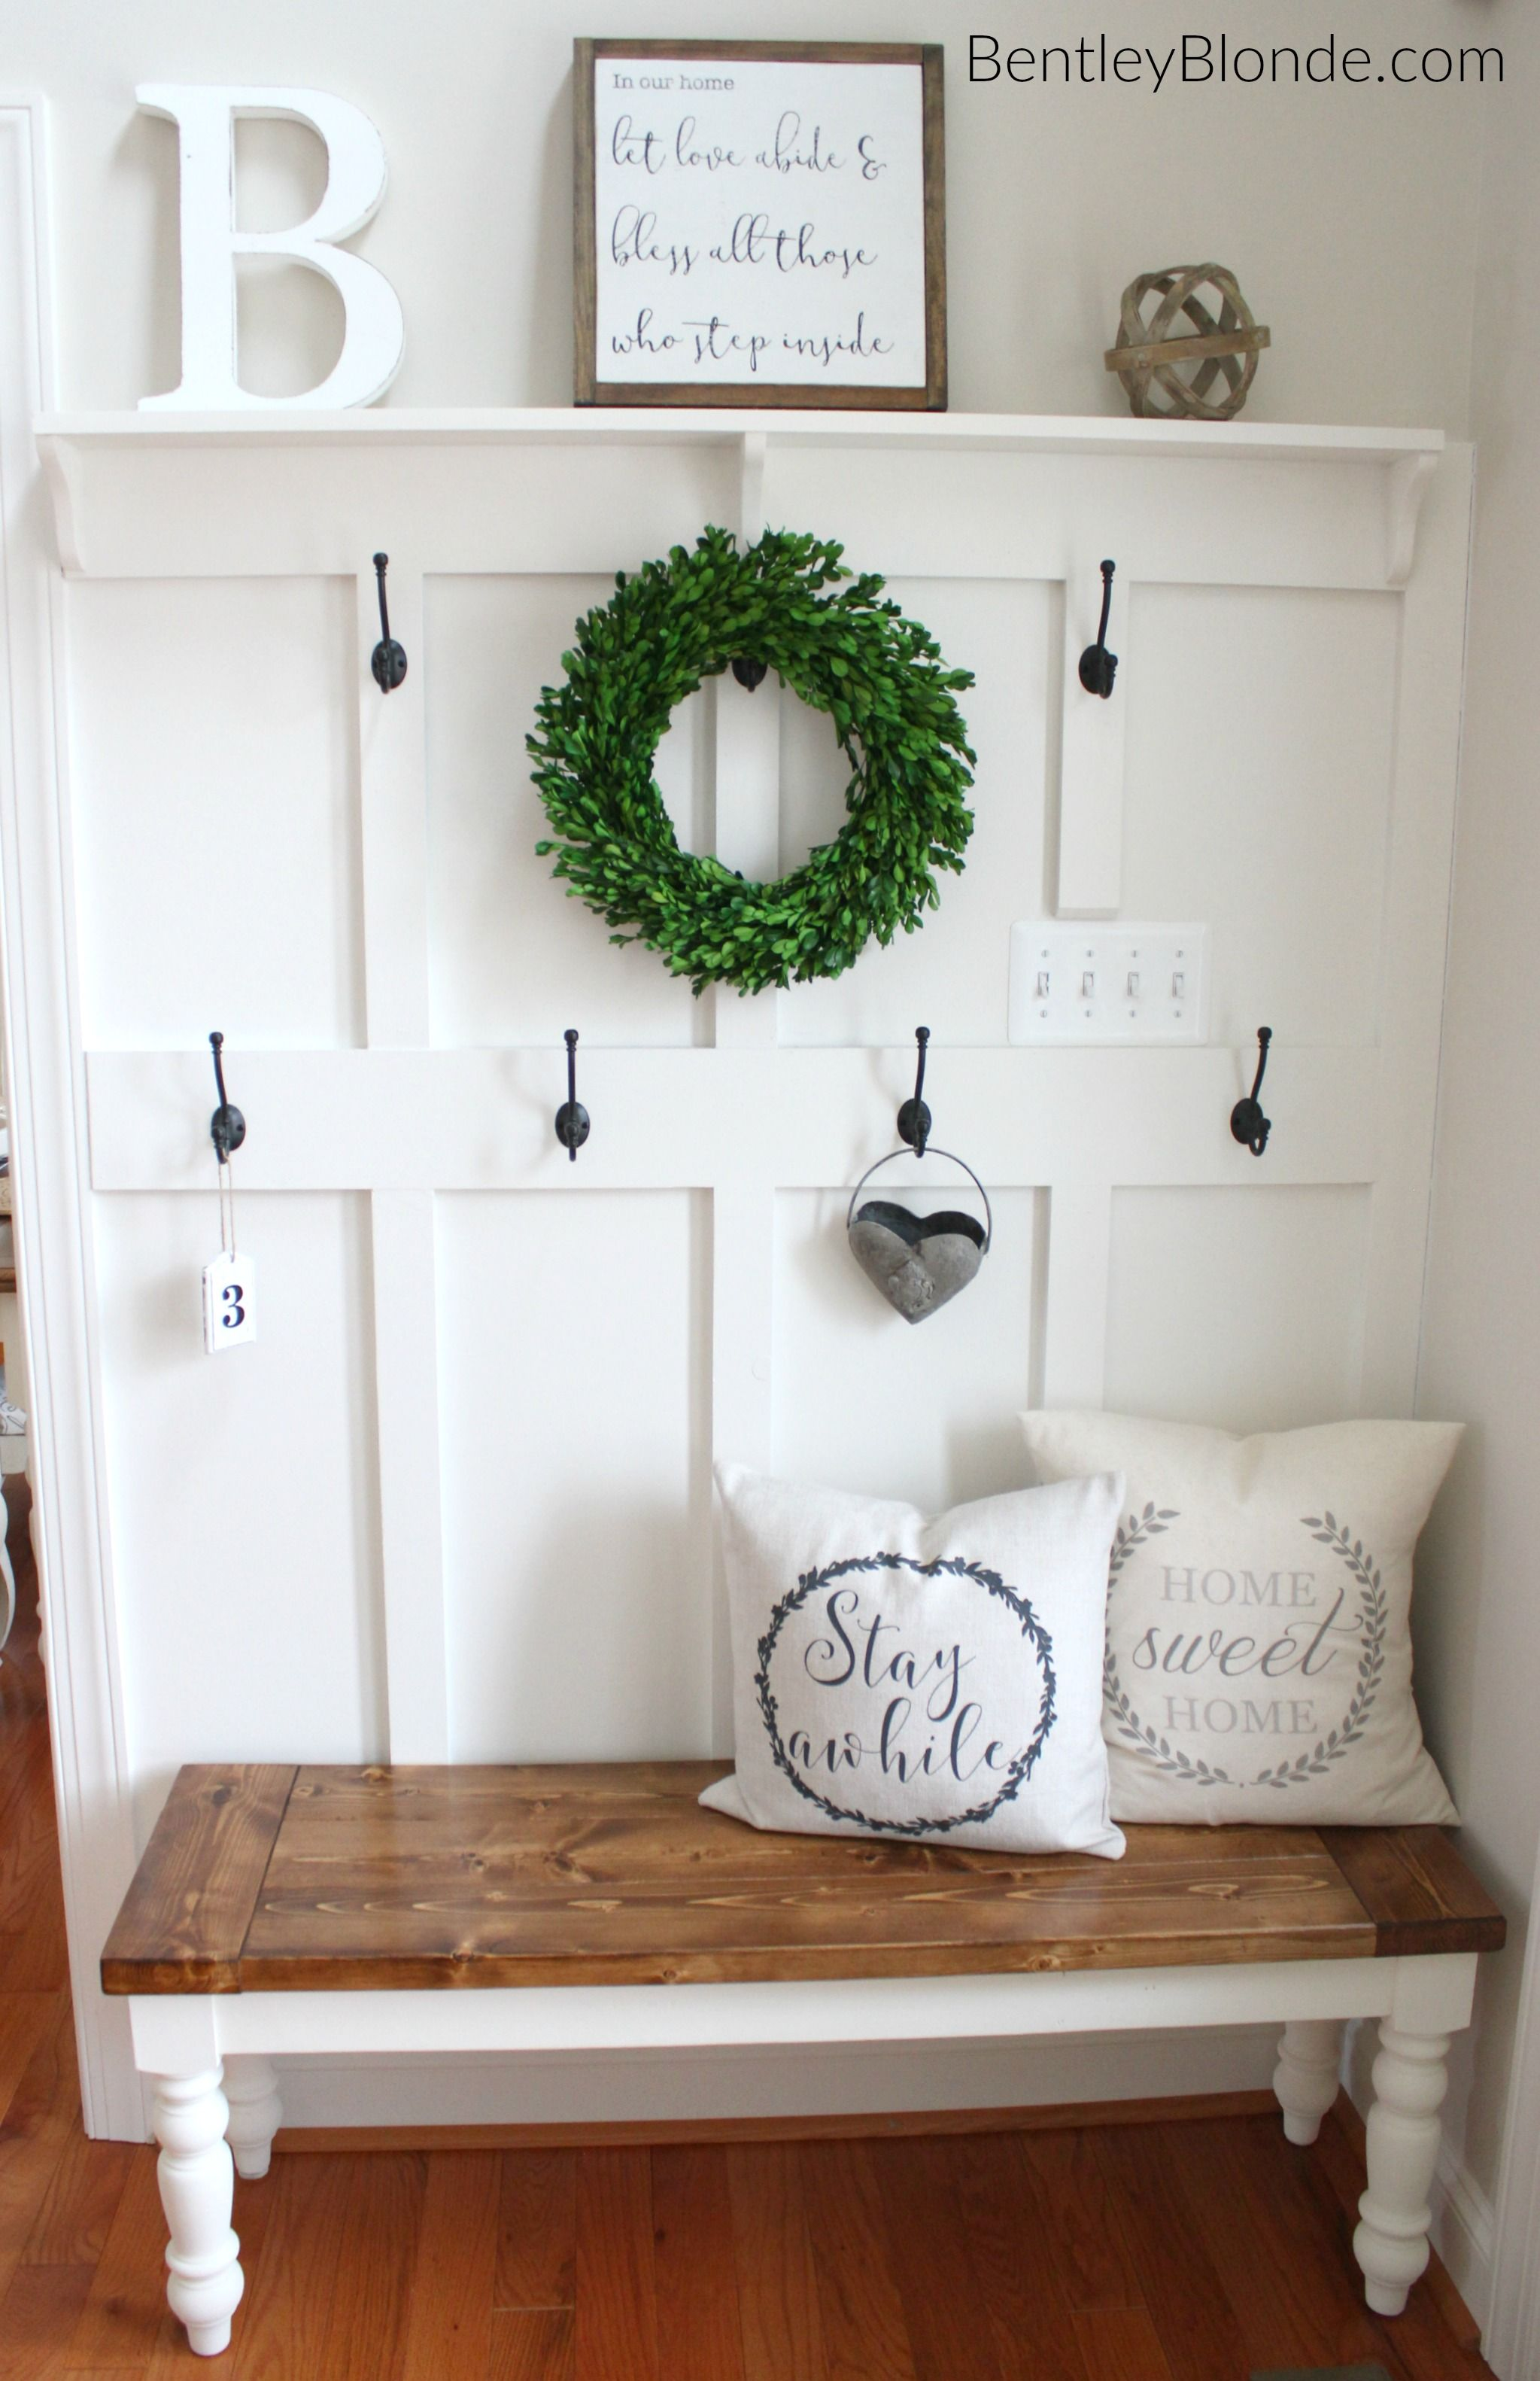 DIY Farmhouse Bench Tutorial Farmhouse bench diy, Rustic